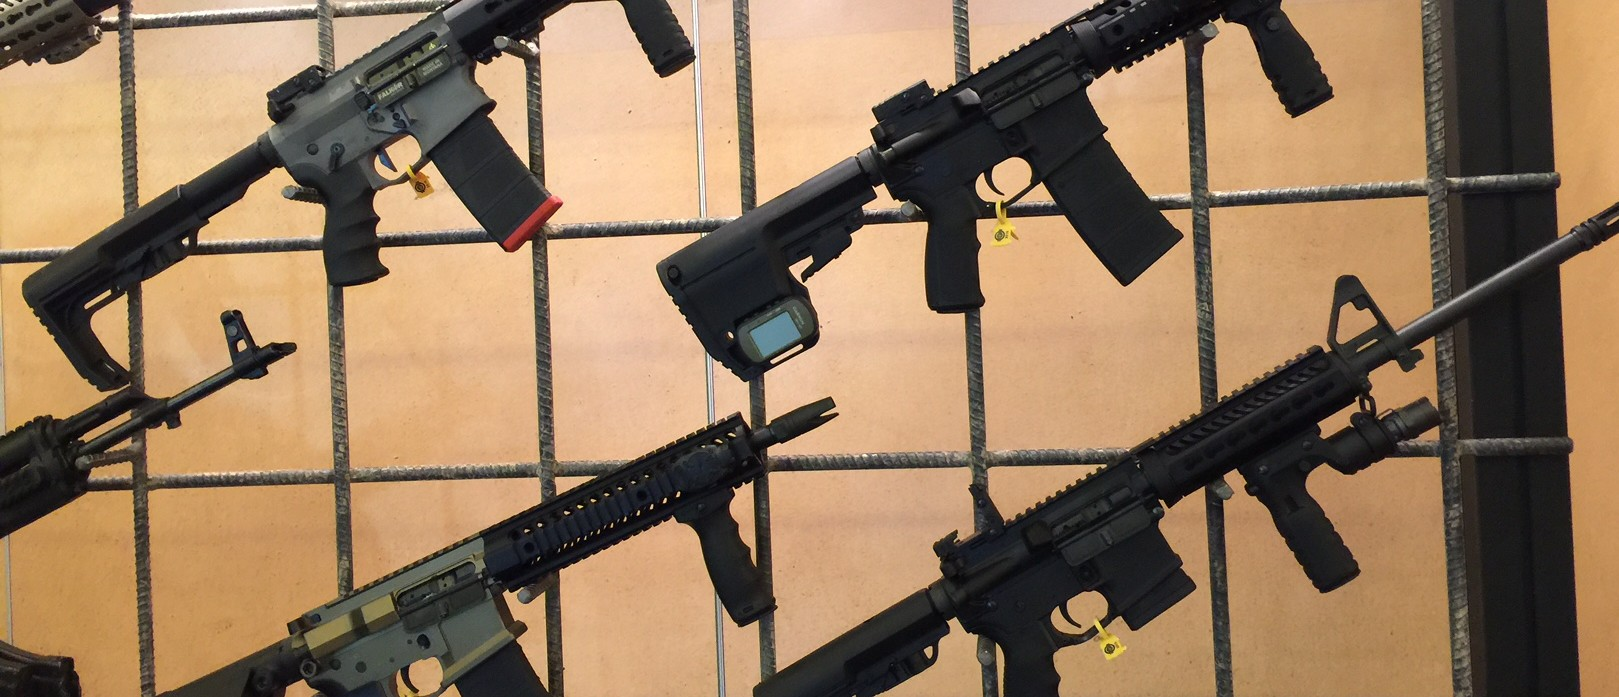 Vendors display latest gun line at SHOT Show 2016 (Photo: Kerry Picket)